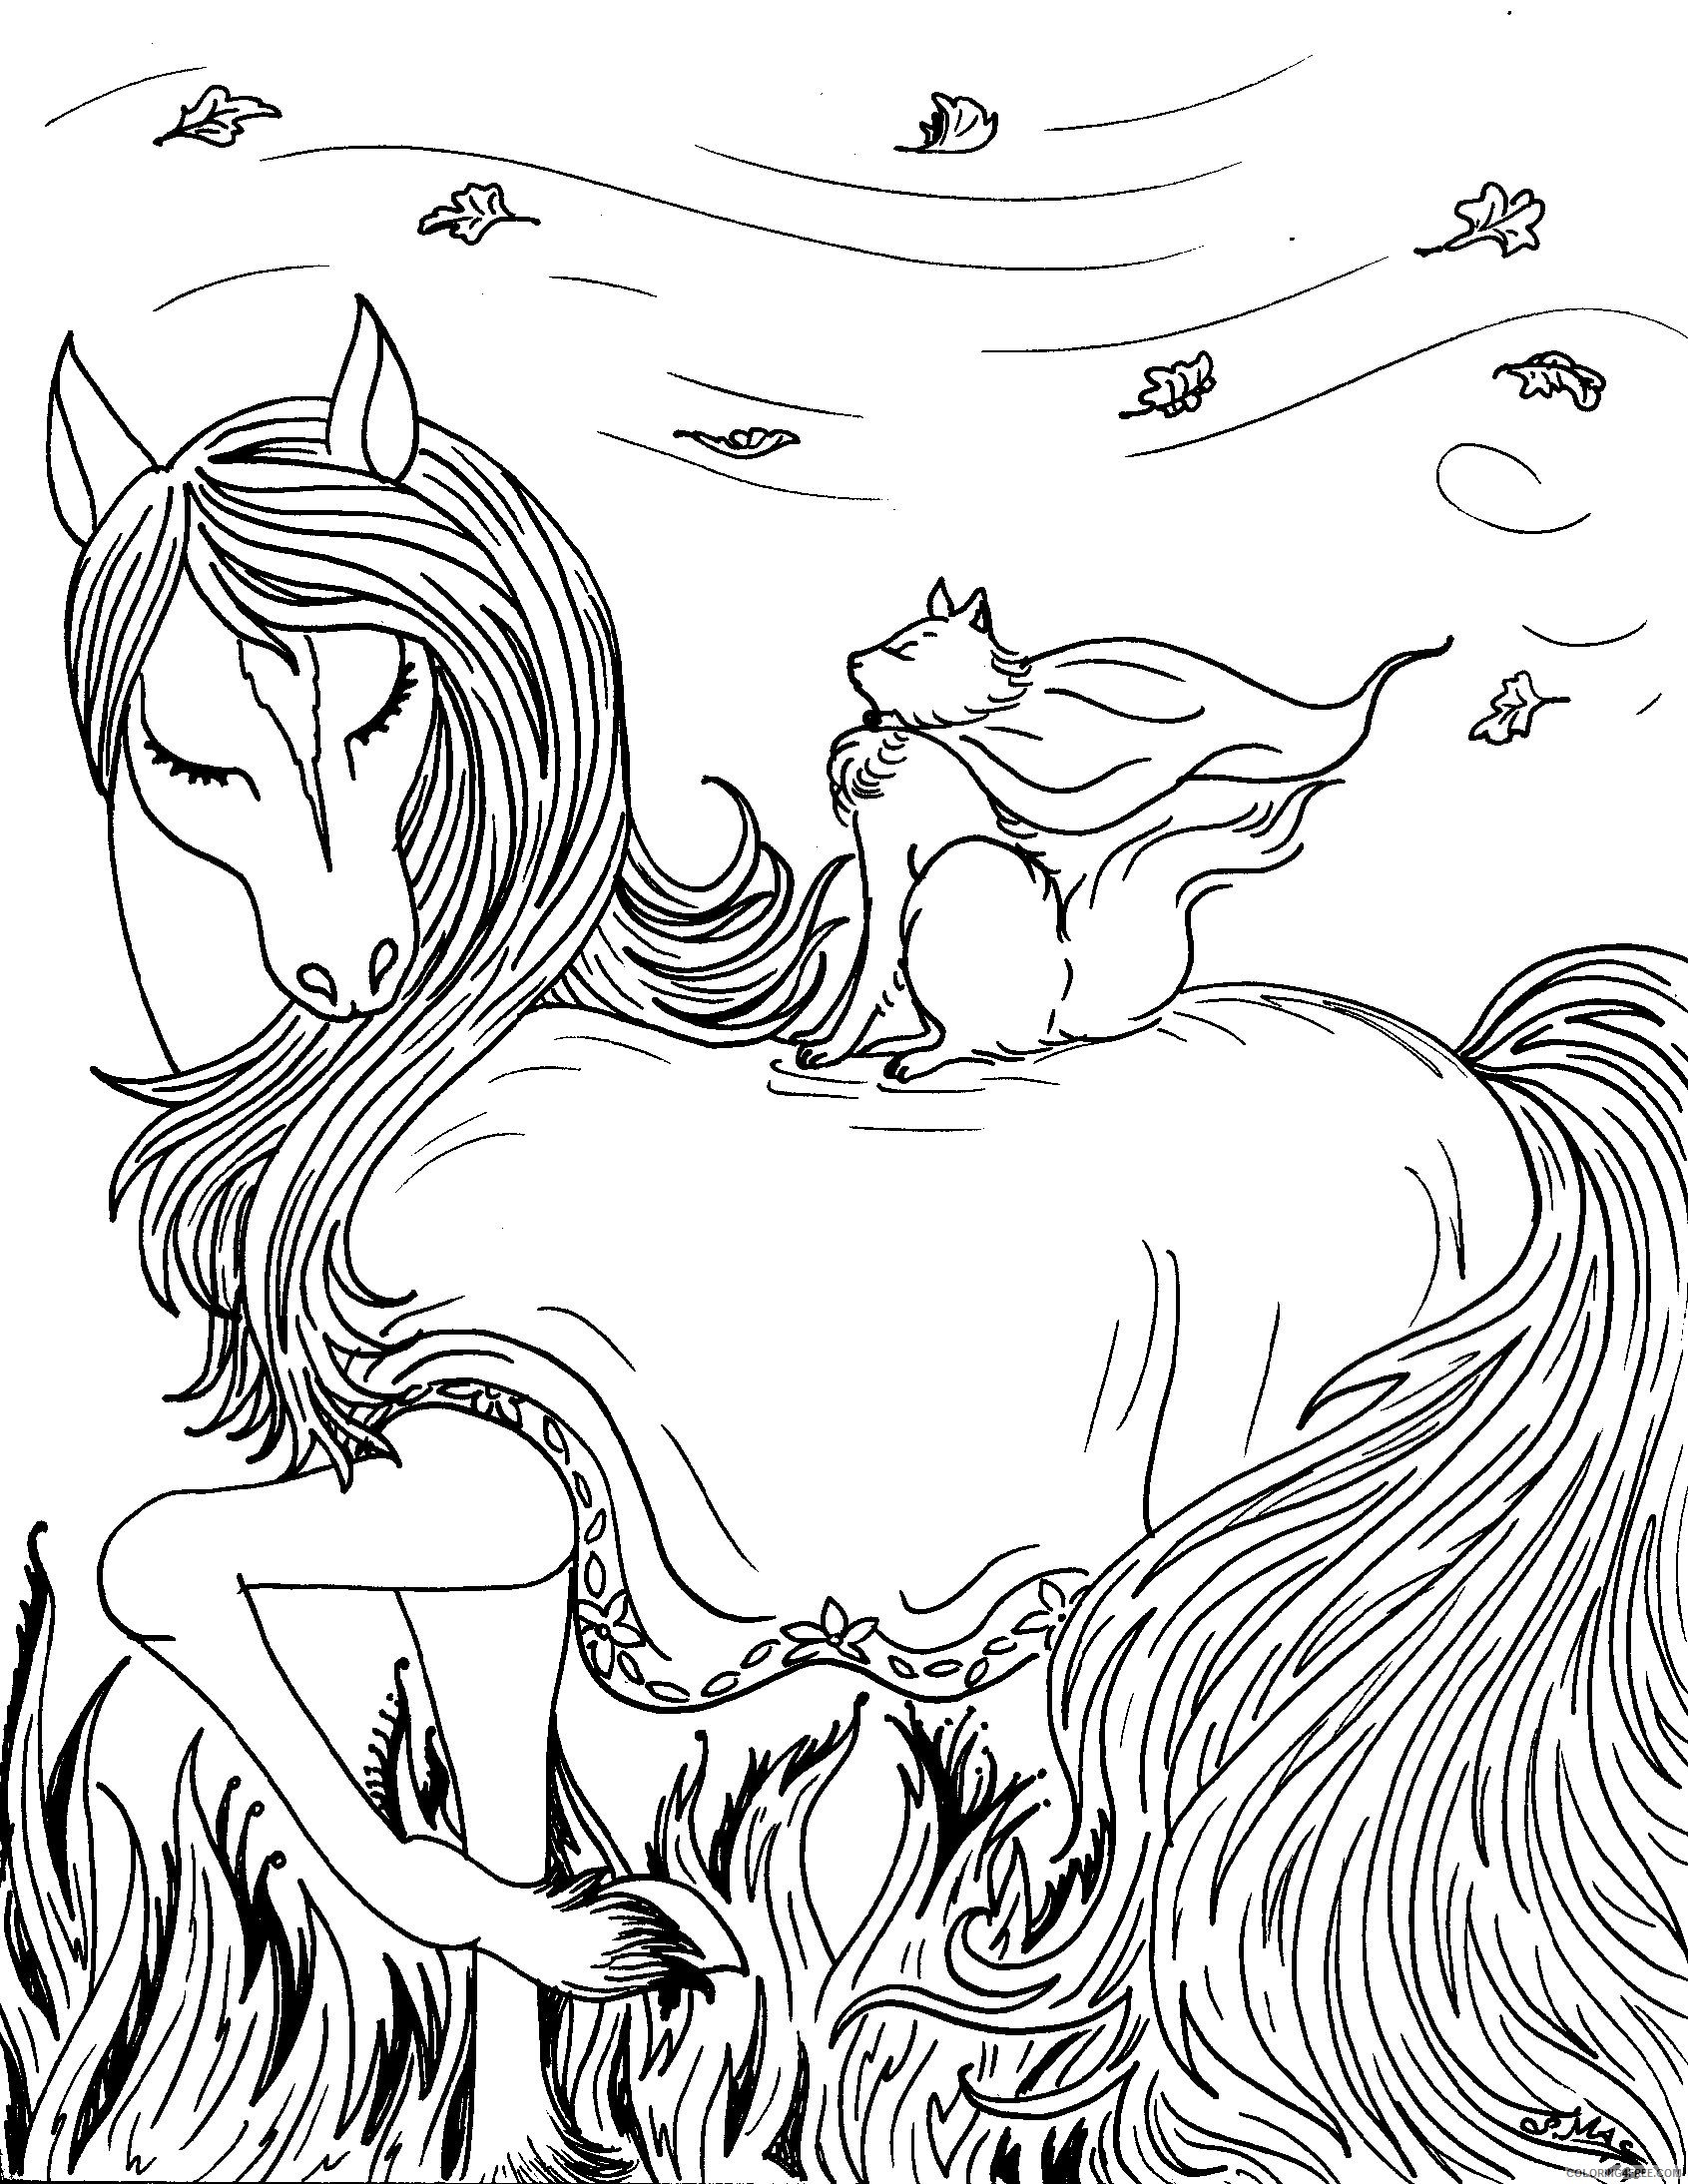 Fantasy Coloring Pages Horse And Cat Coloring4free Coloring4free Com